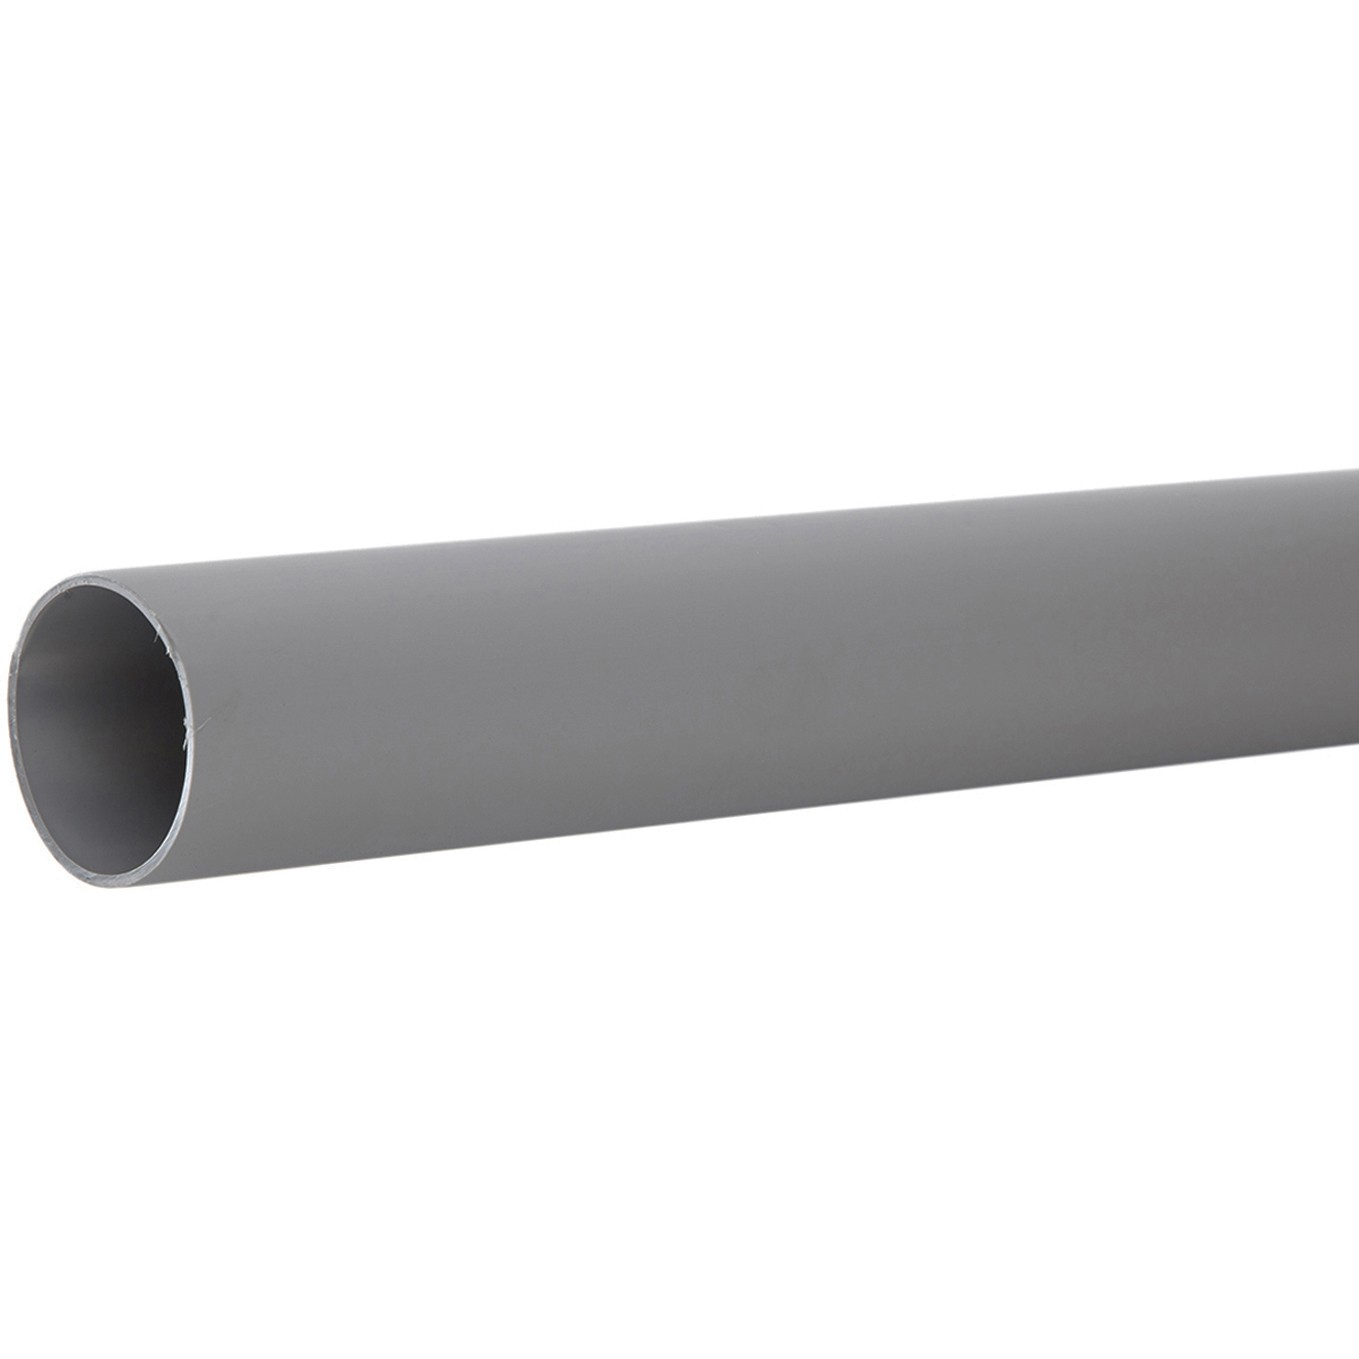 Polypipe 50mm Push Fit Waste Pipe - Grey, 3 metre